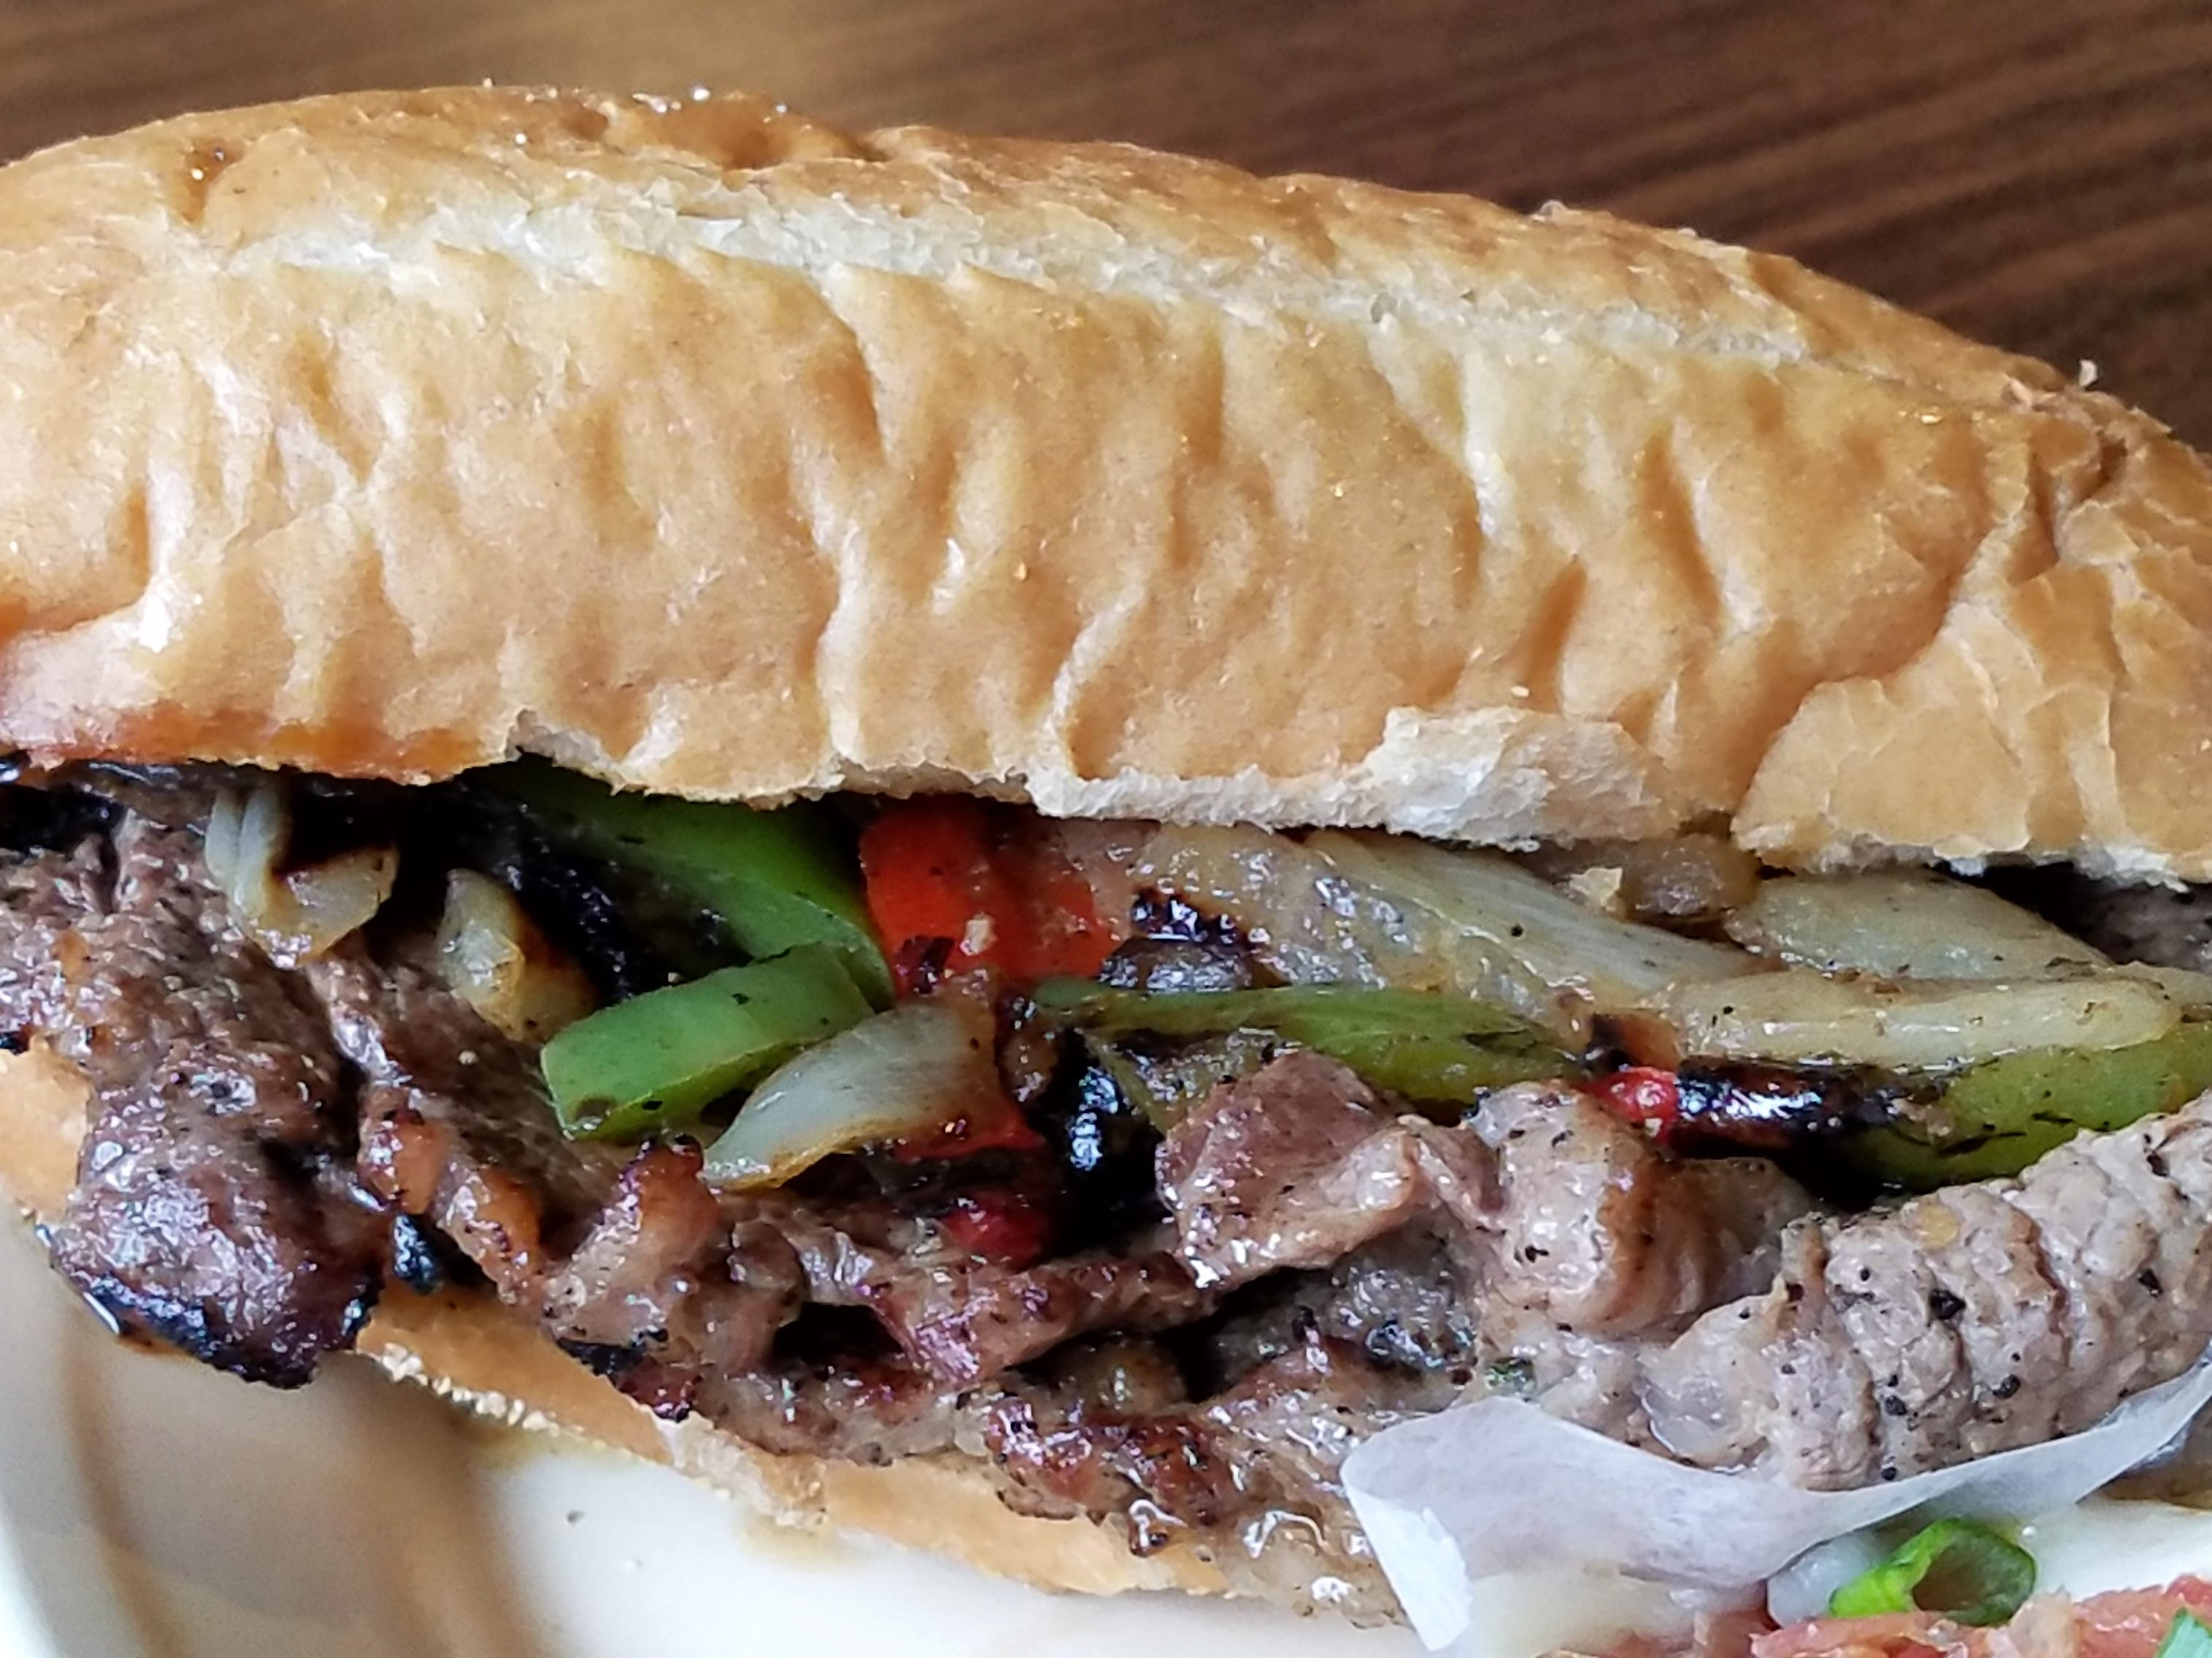 A ribeye steak sandwiches with peppers and onions Gottzz's is located at 105 Cherry St. in Carmi.